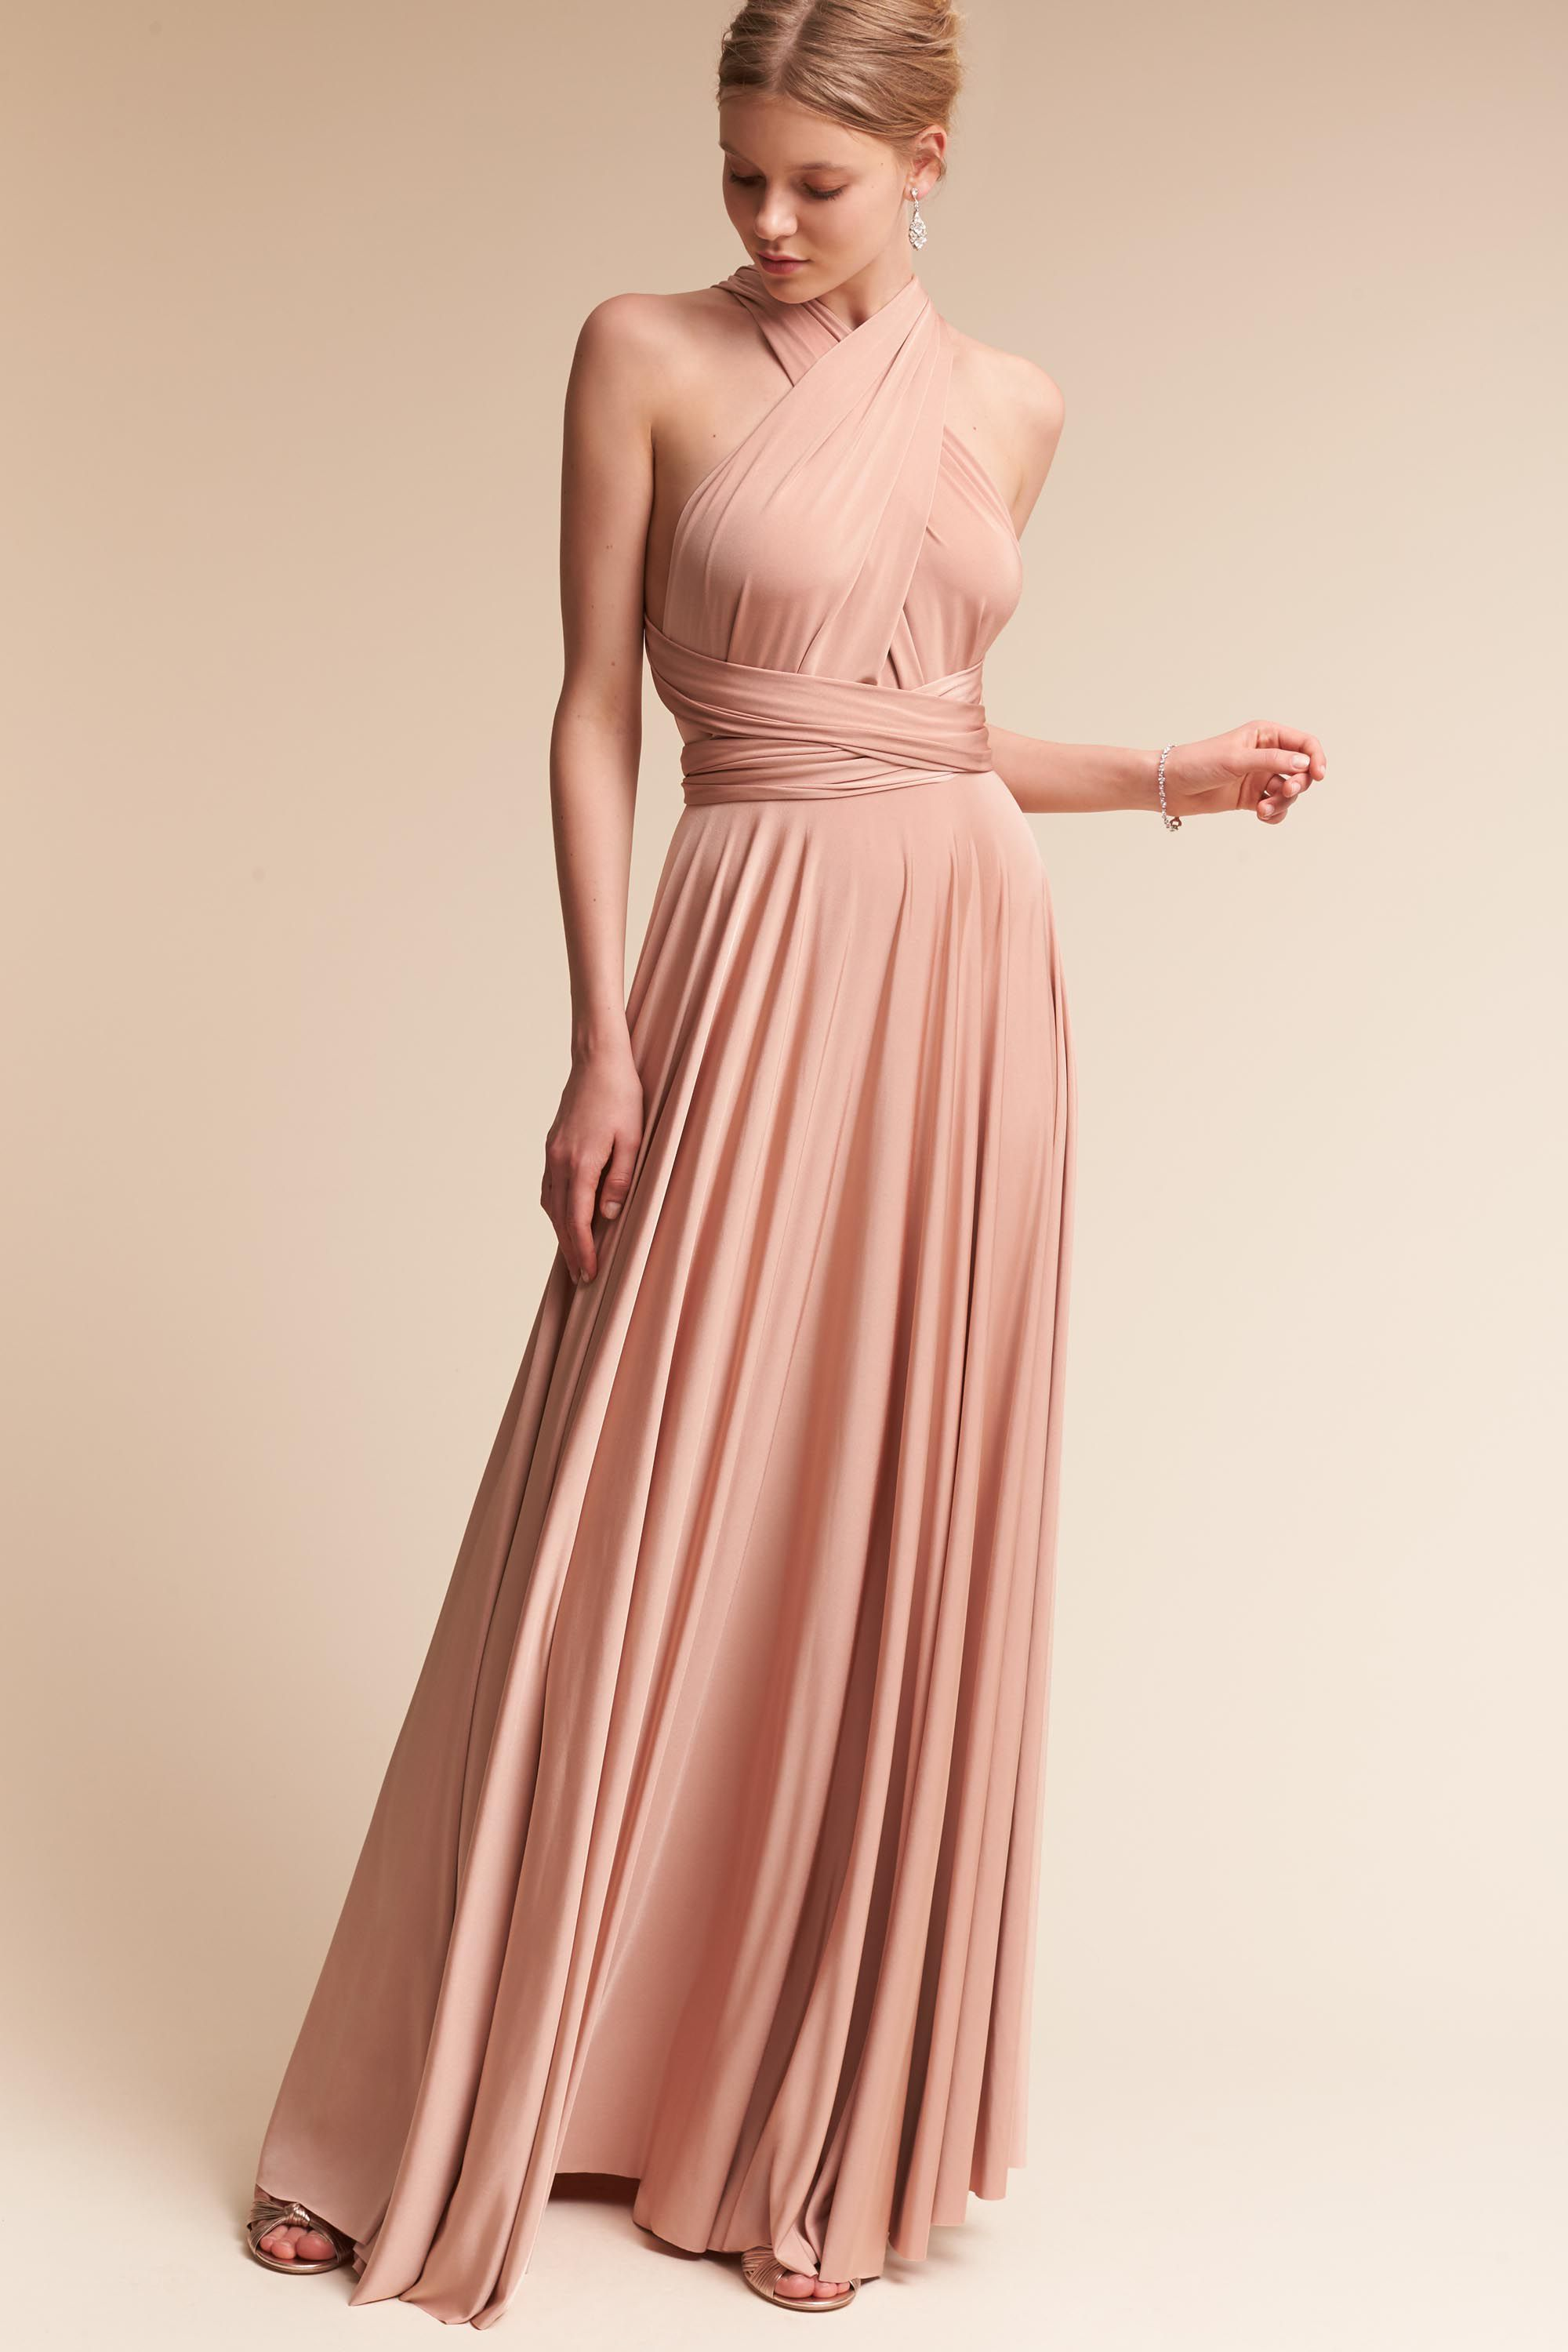 BHLDN Ginger Convertible Maxi Dress Matte Rosewater in Occasion ...